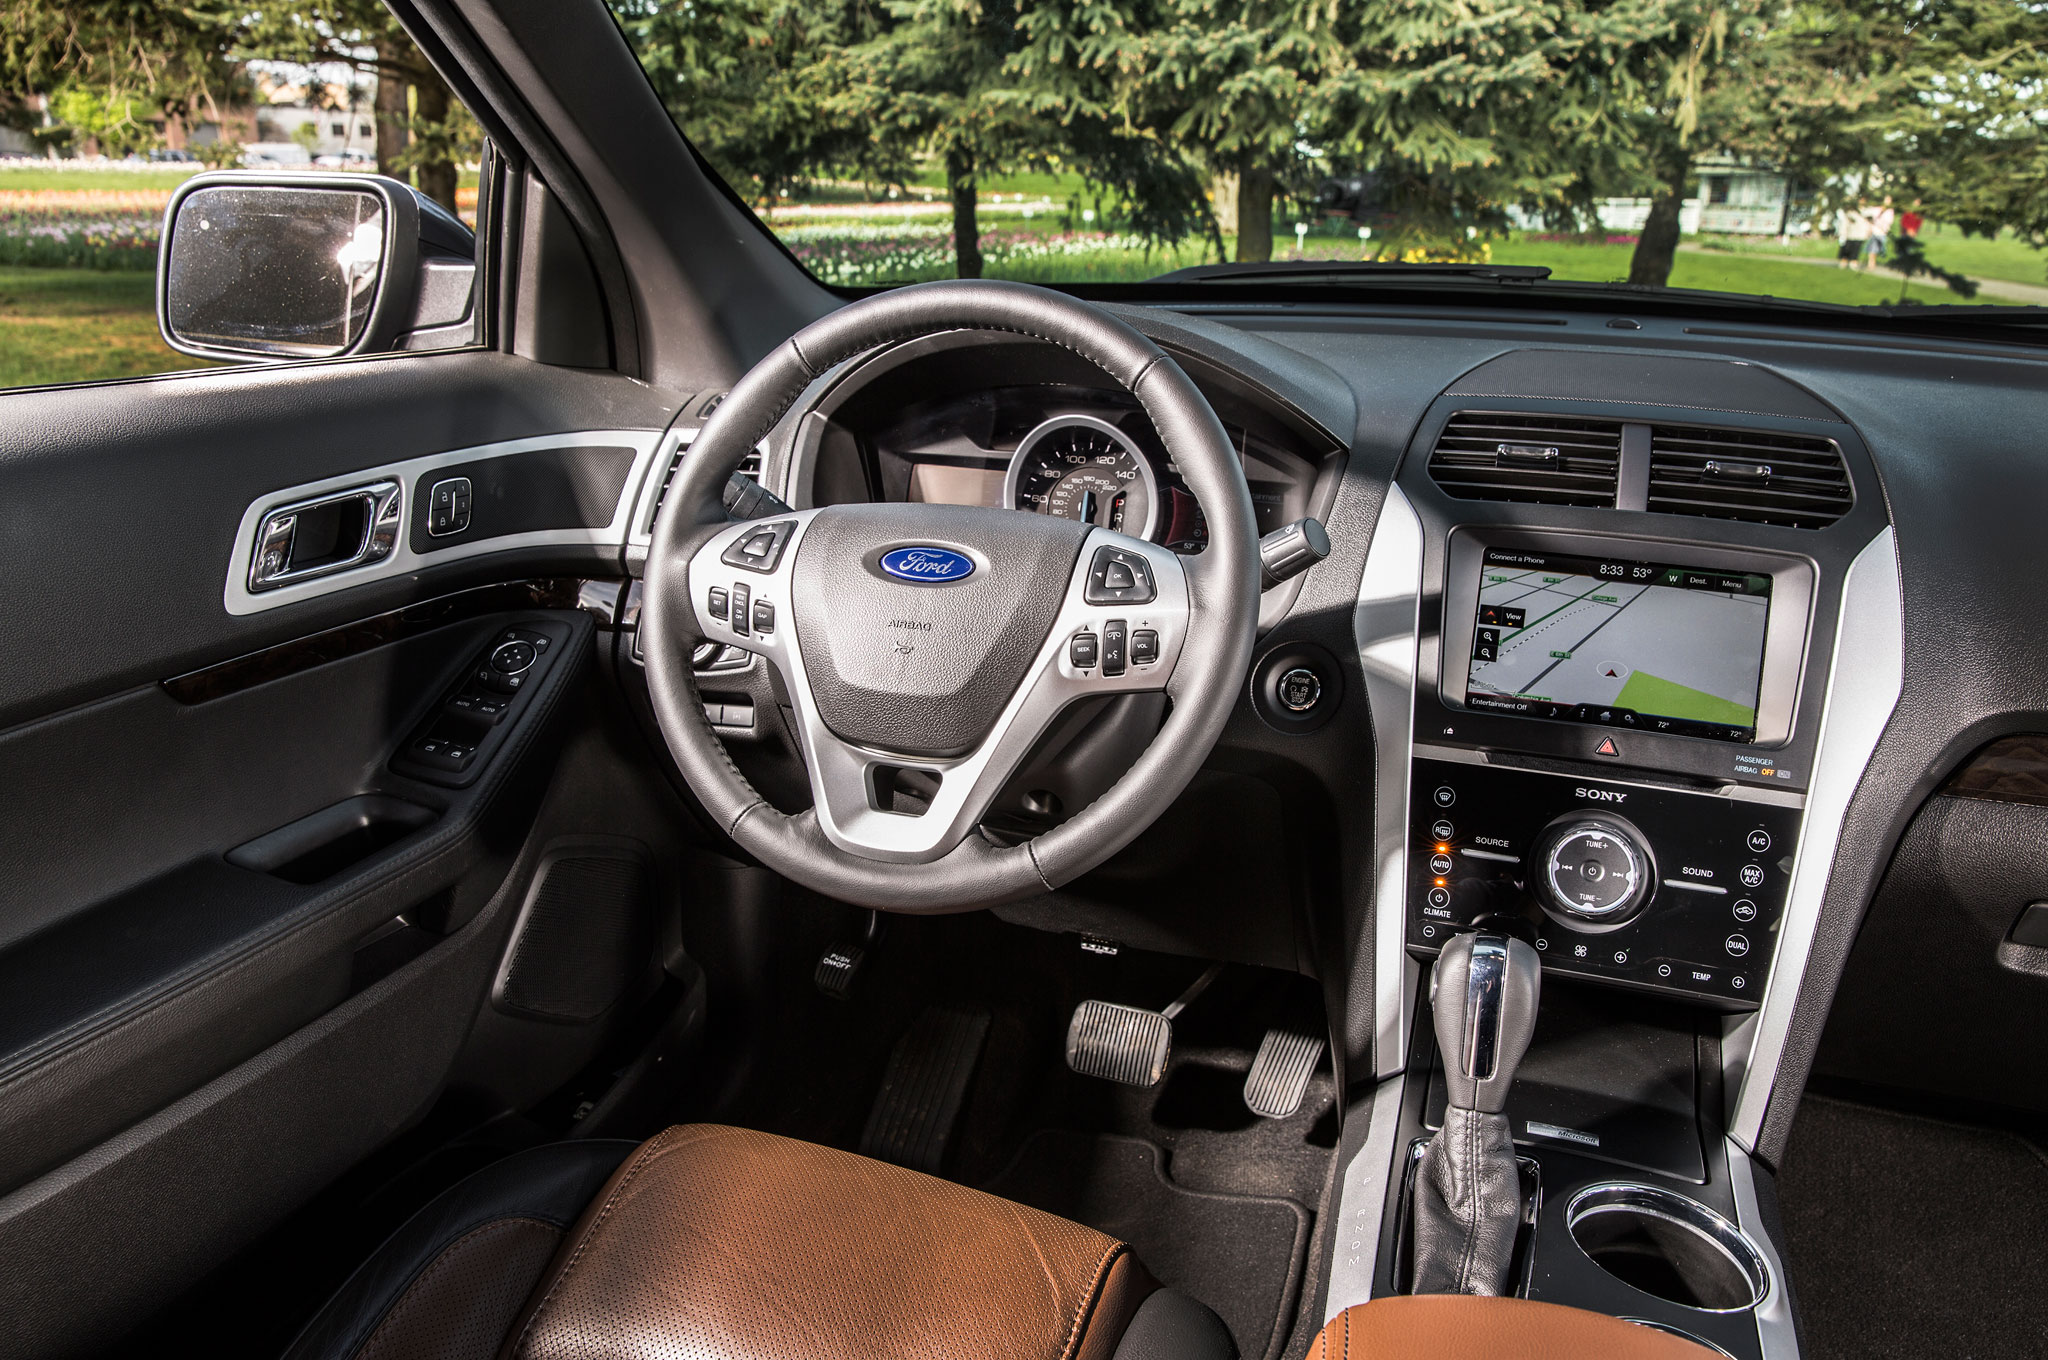 Ford Explorer 2013 Limited Interior Images Galleries With A Bite